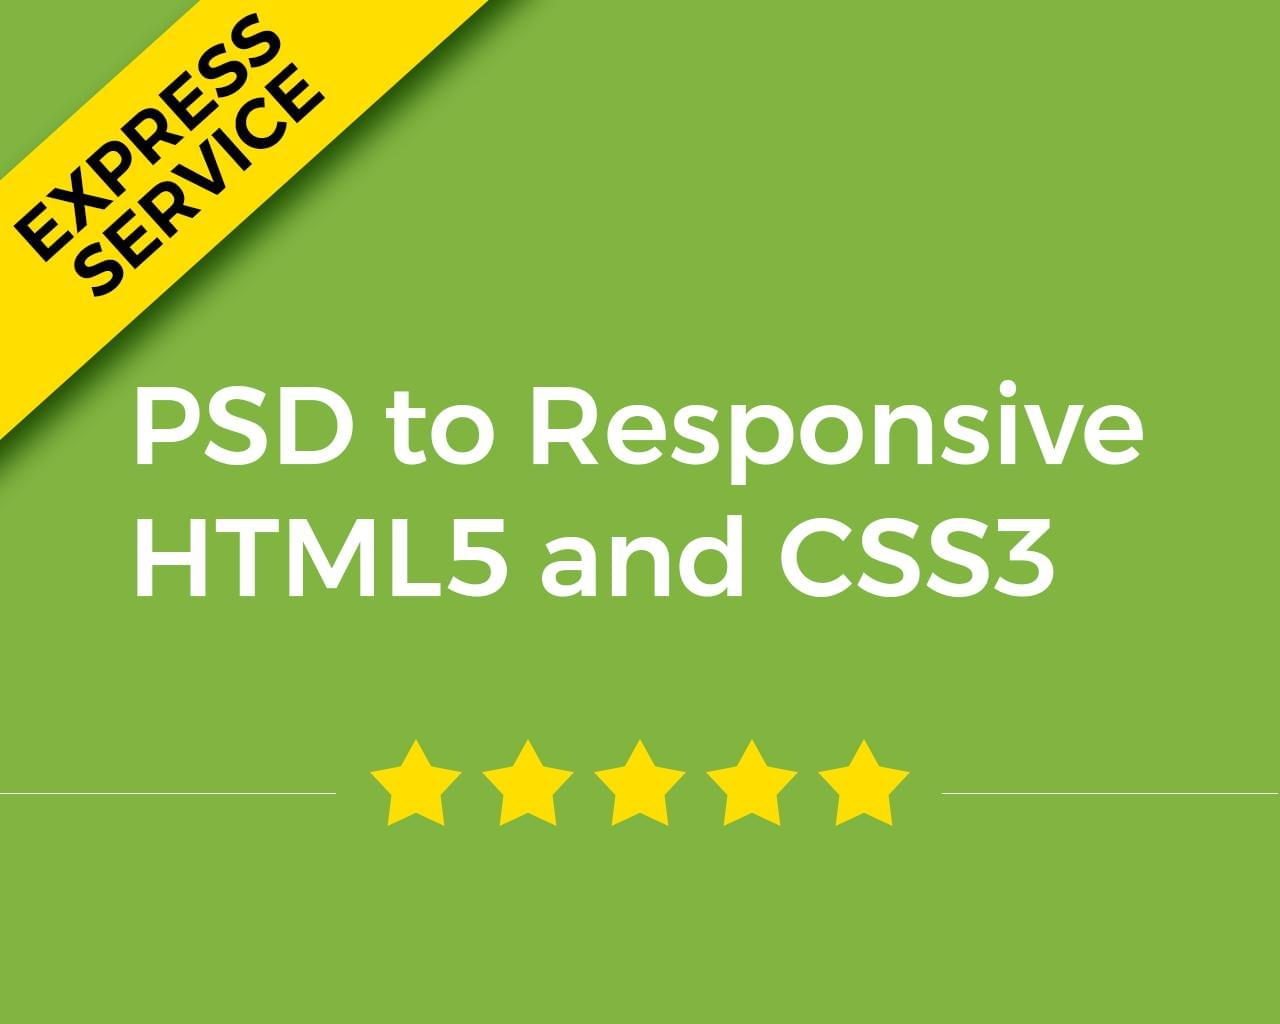 PSD to Responsive HTML5 and CSS3 by BarwalDesigns - 111804